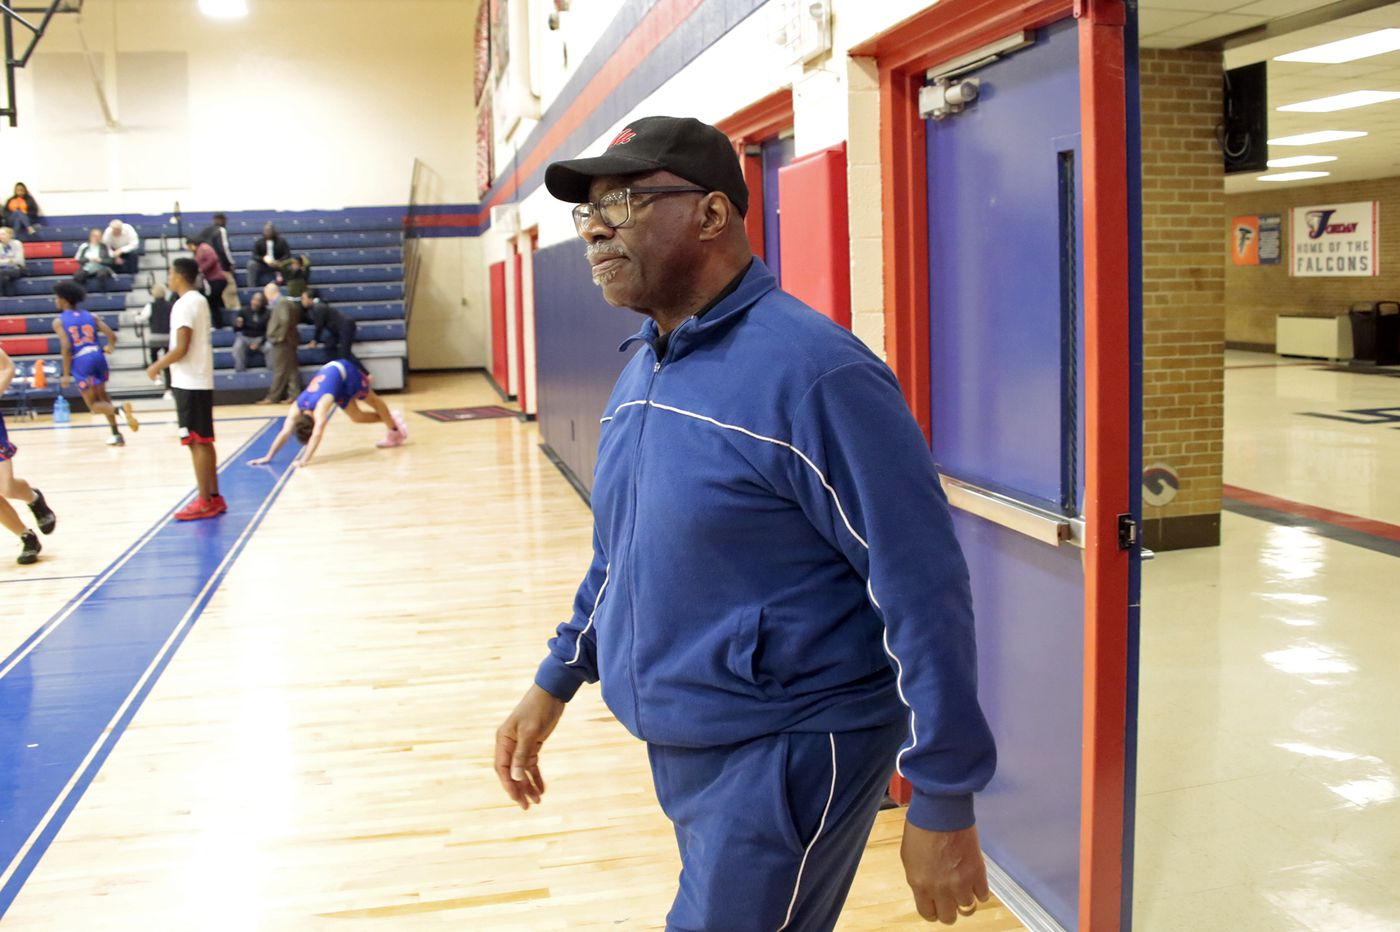 Bill Ellerbee's life path made him a mentor to Rasheed Wallace and many more